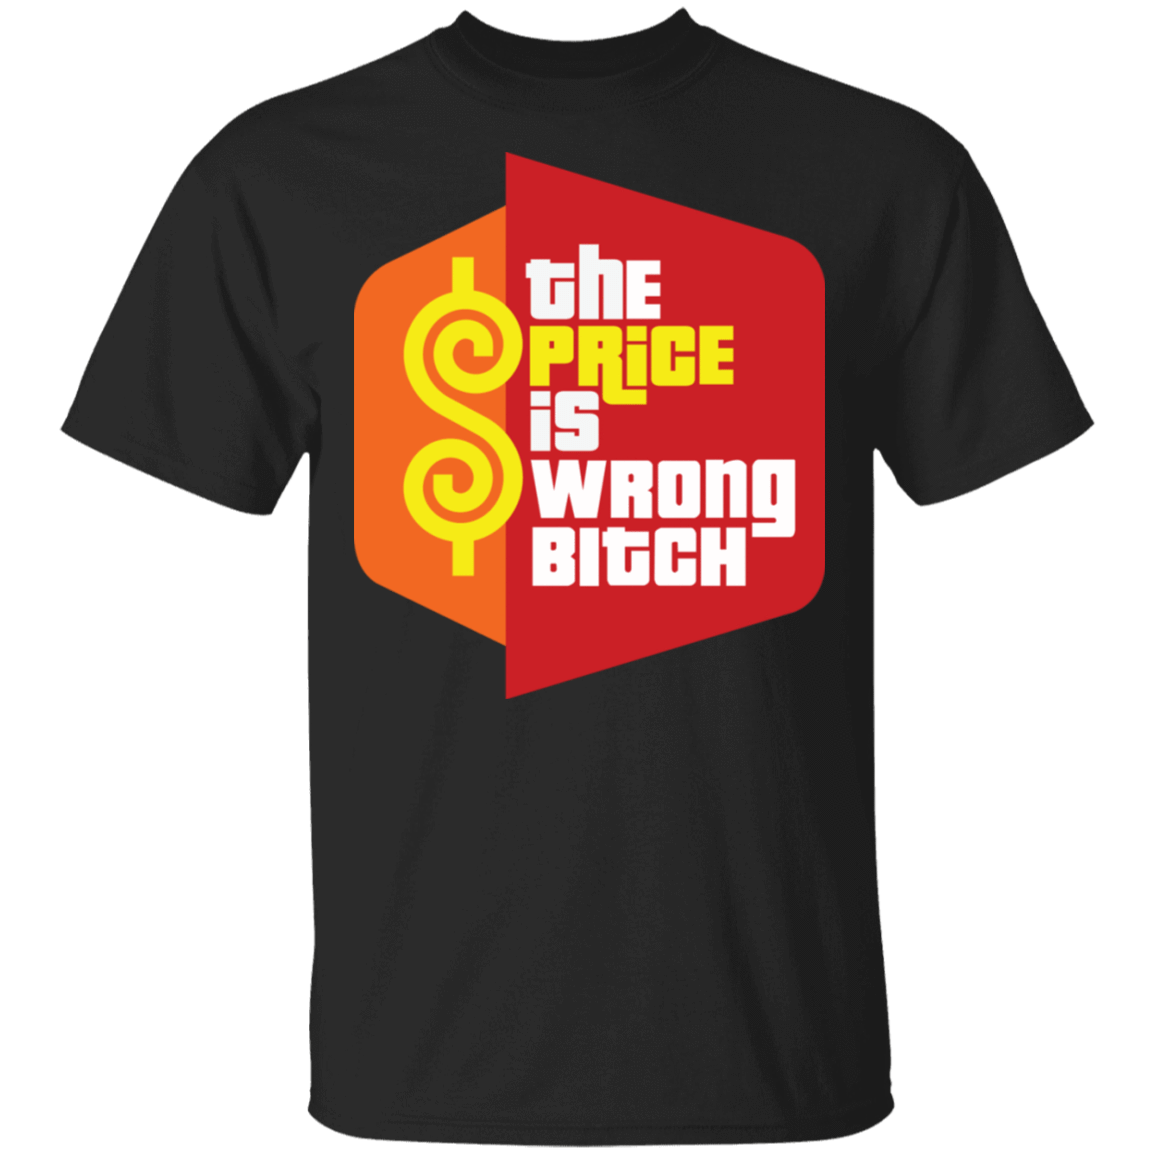 Happy Gilmore The Price is Wrong Bitch T-Shirts, Hoodies, Tank 22-113-79715850-252 - Tee Ript